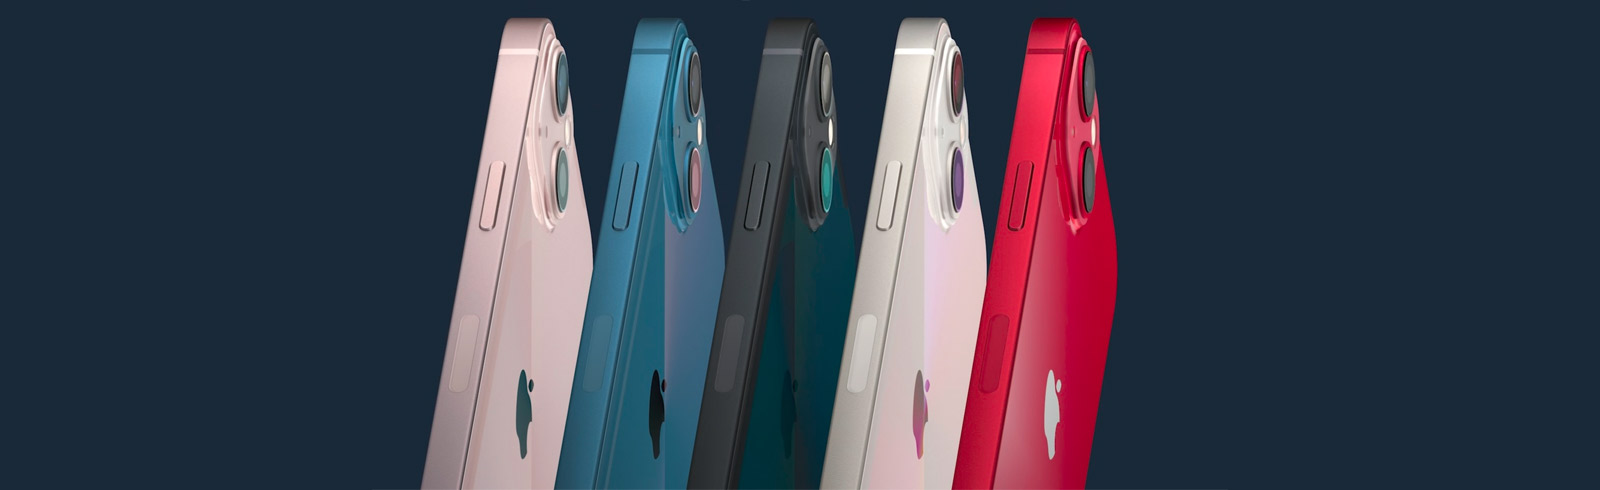 Apple iPhone 13, iPhone 13 Pro, iPhone 13 Pro Max, and iPhone 13 mini go official